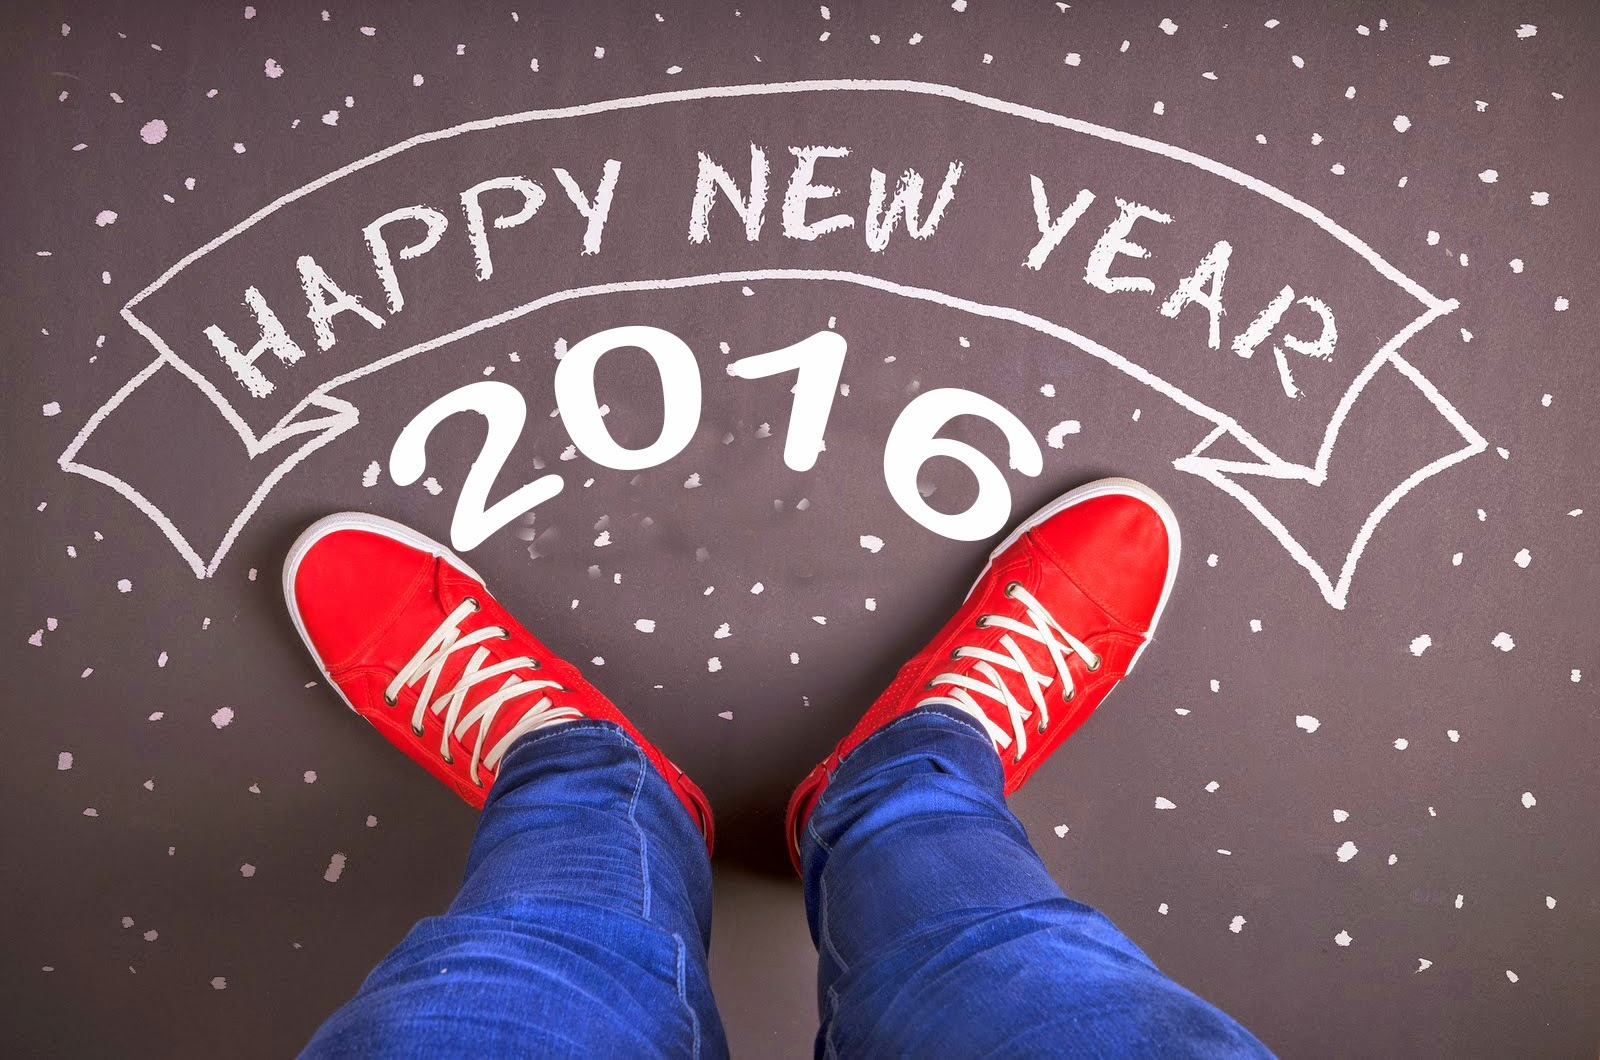 Happy New Year SMS Messages Wishes Wallpapers 2016 1600x1060